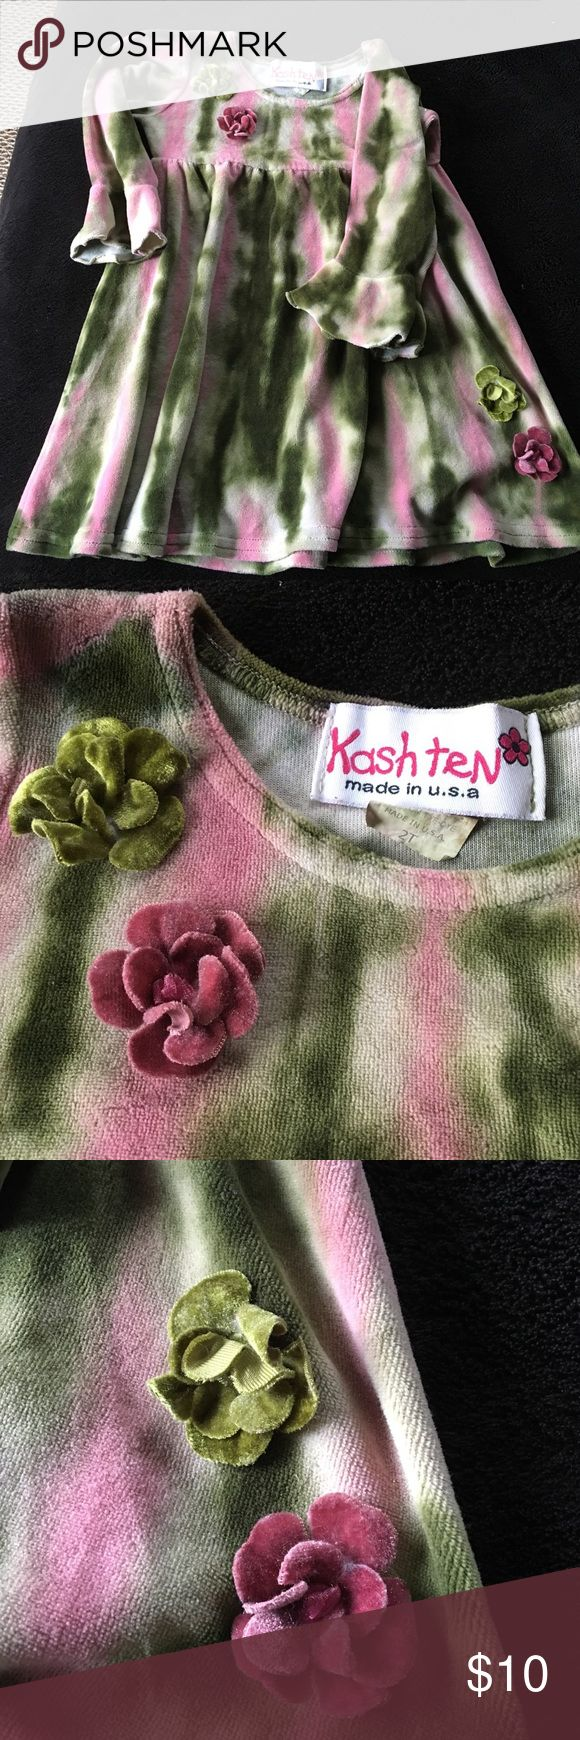 Gorgeous tie dyed girls dress! Beautiful girls velour dress that had a unique tie dyed pattern. Flower detail by neck and bottom left of dress.  Only worn a handful of times and is in excellent condition! Bought at a NYC children's boutique. Bundle and save! Dresses